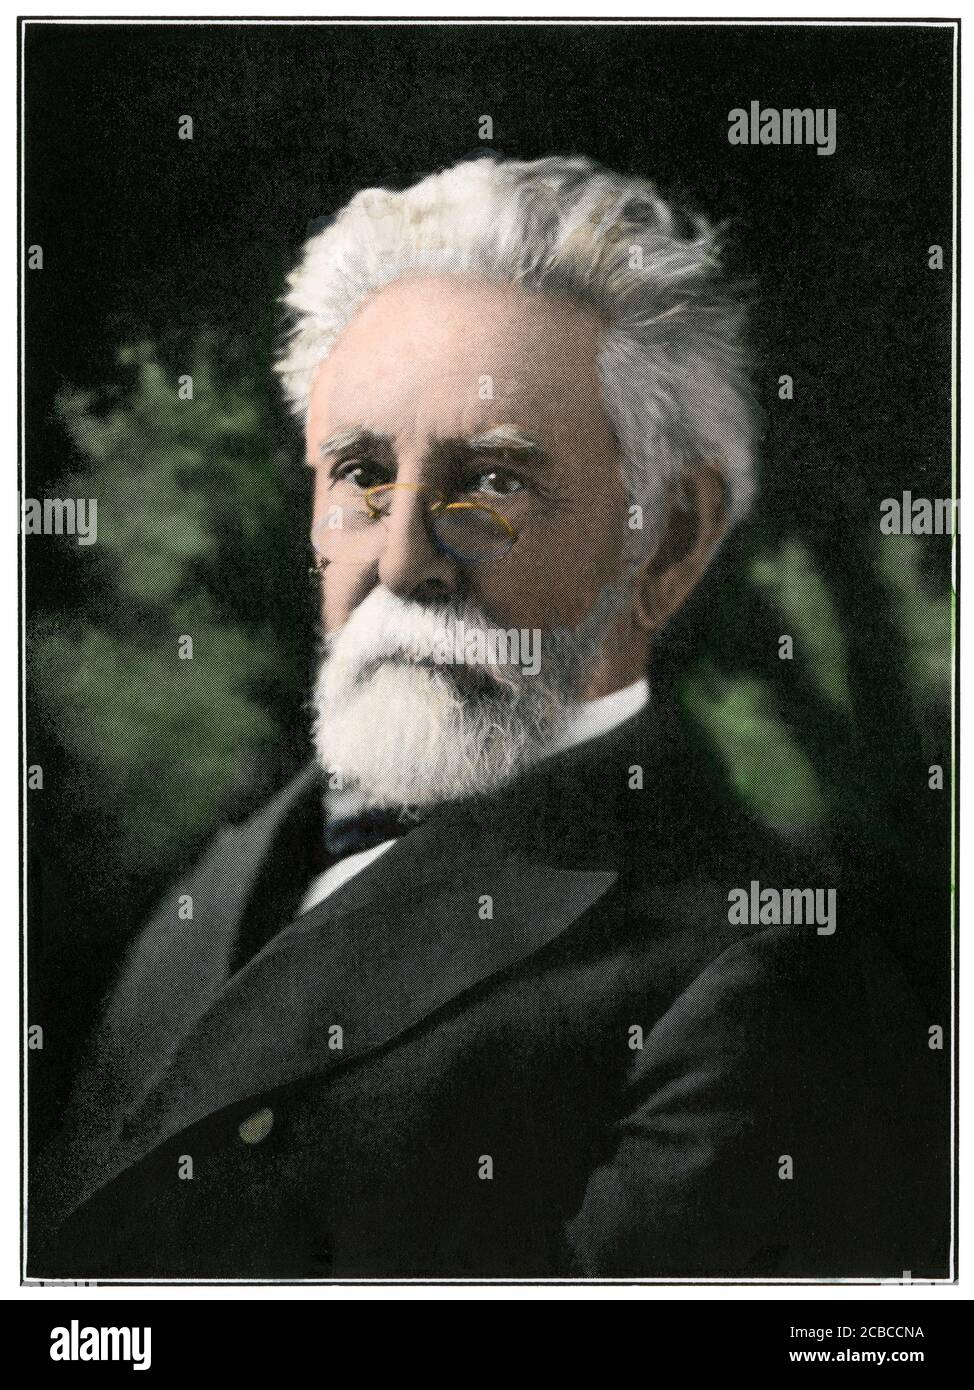 Norman J. Colman, first US Secretary of Agriculture. Hand-colored halftone of a photograph Stock Photo